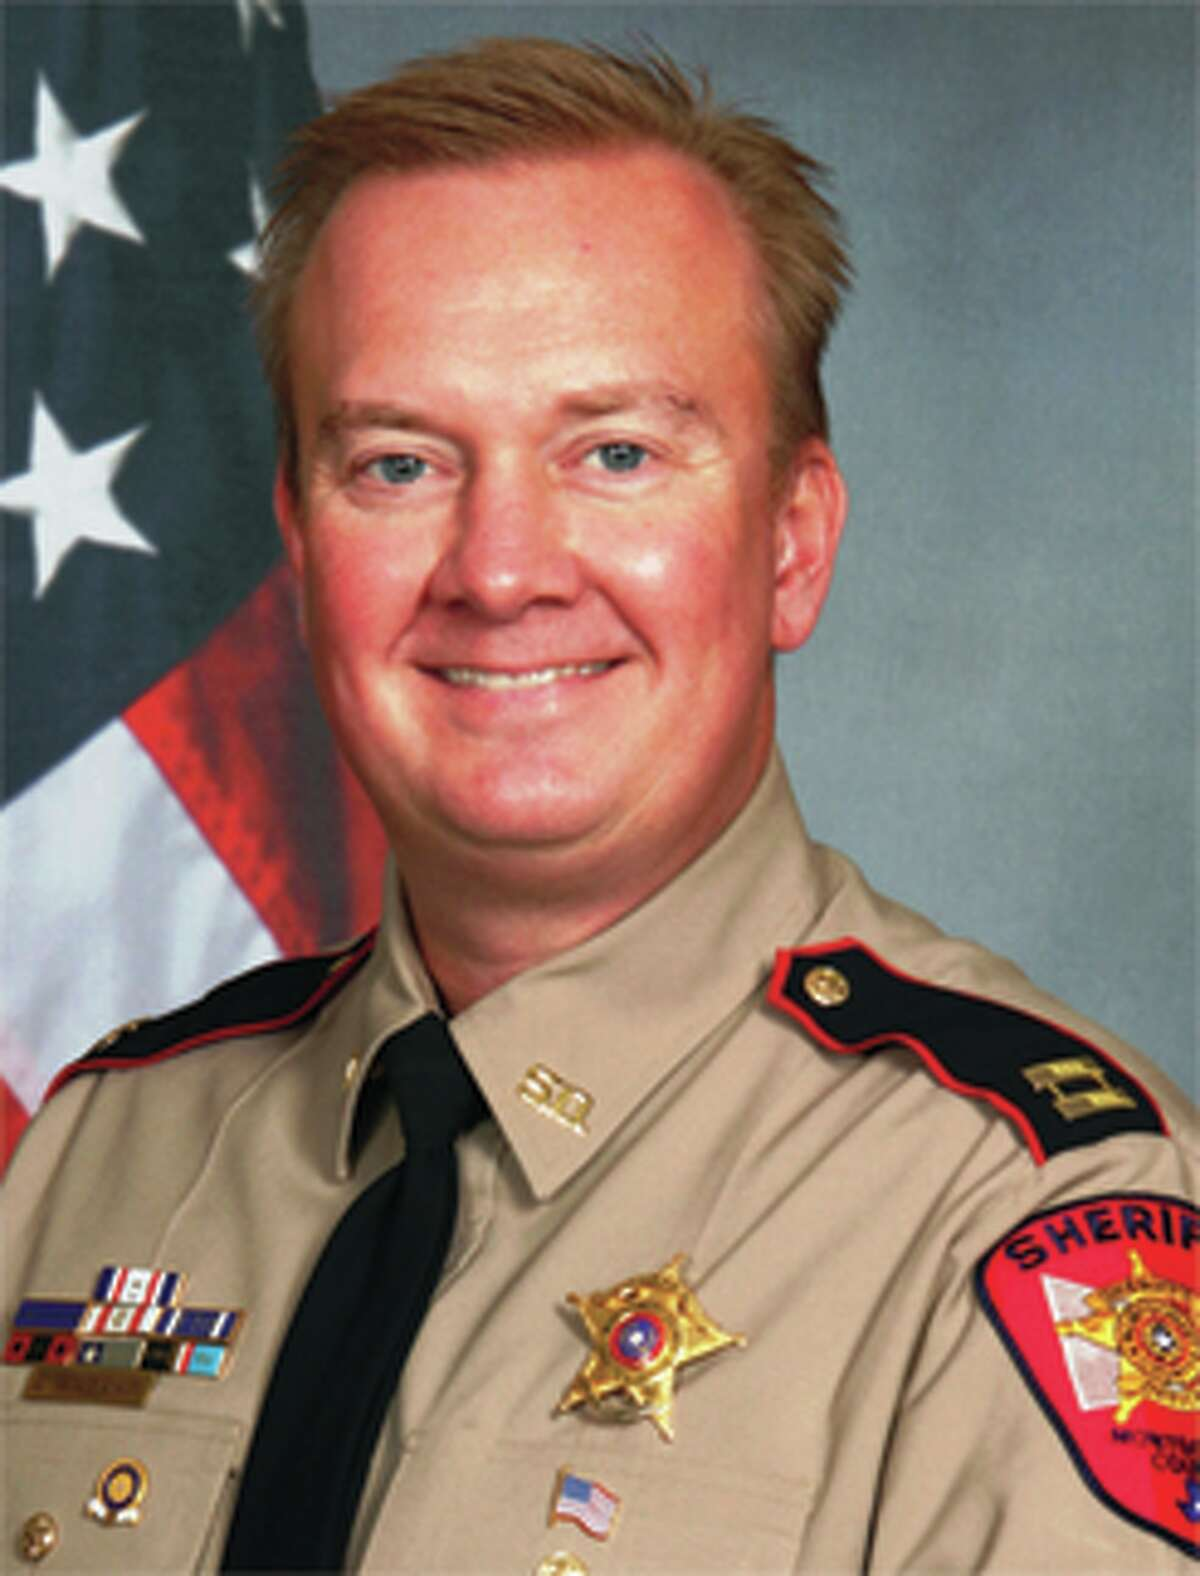 Rand Henderson candidate running for Mongtomery County Sheriff.